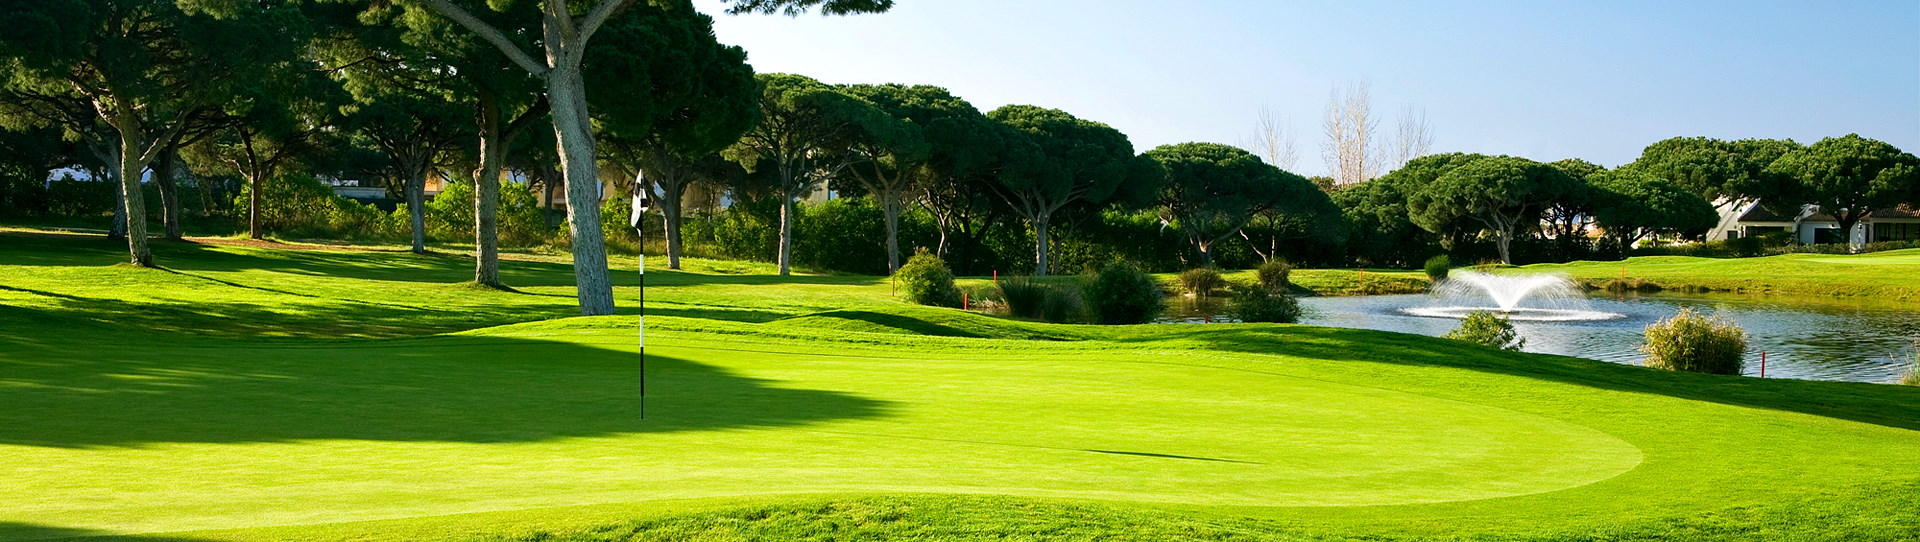 Vilamoura Tailor-made Classic Golf Package - Photo 1